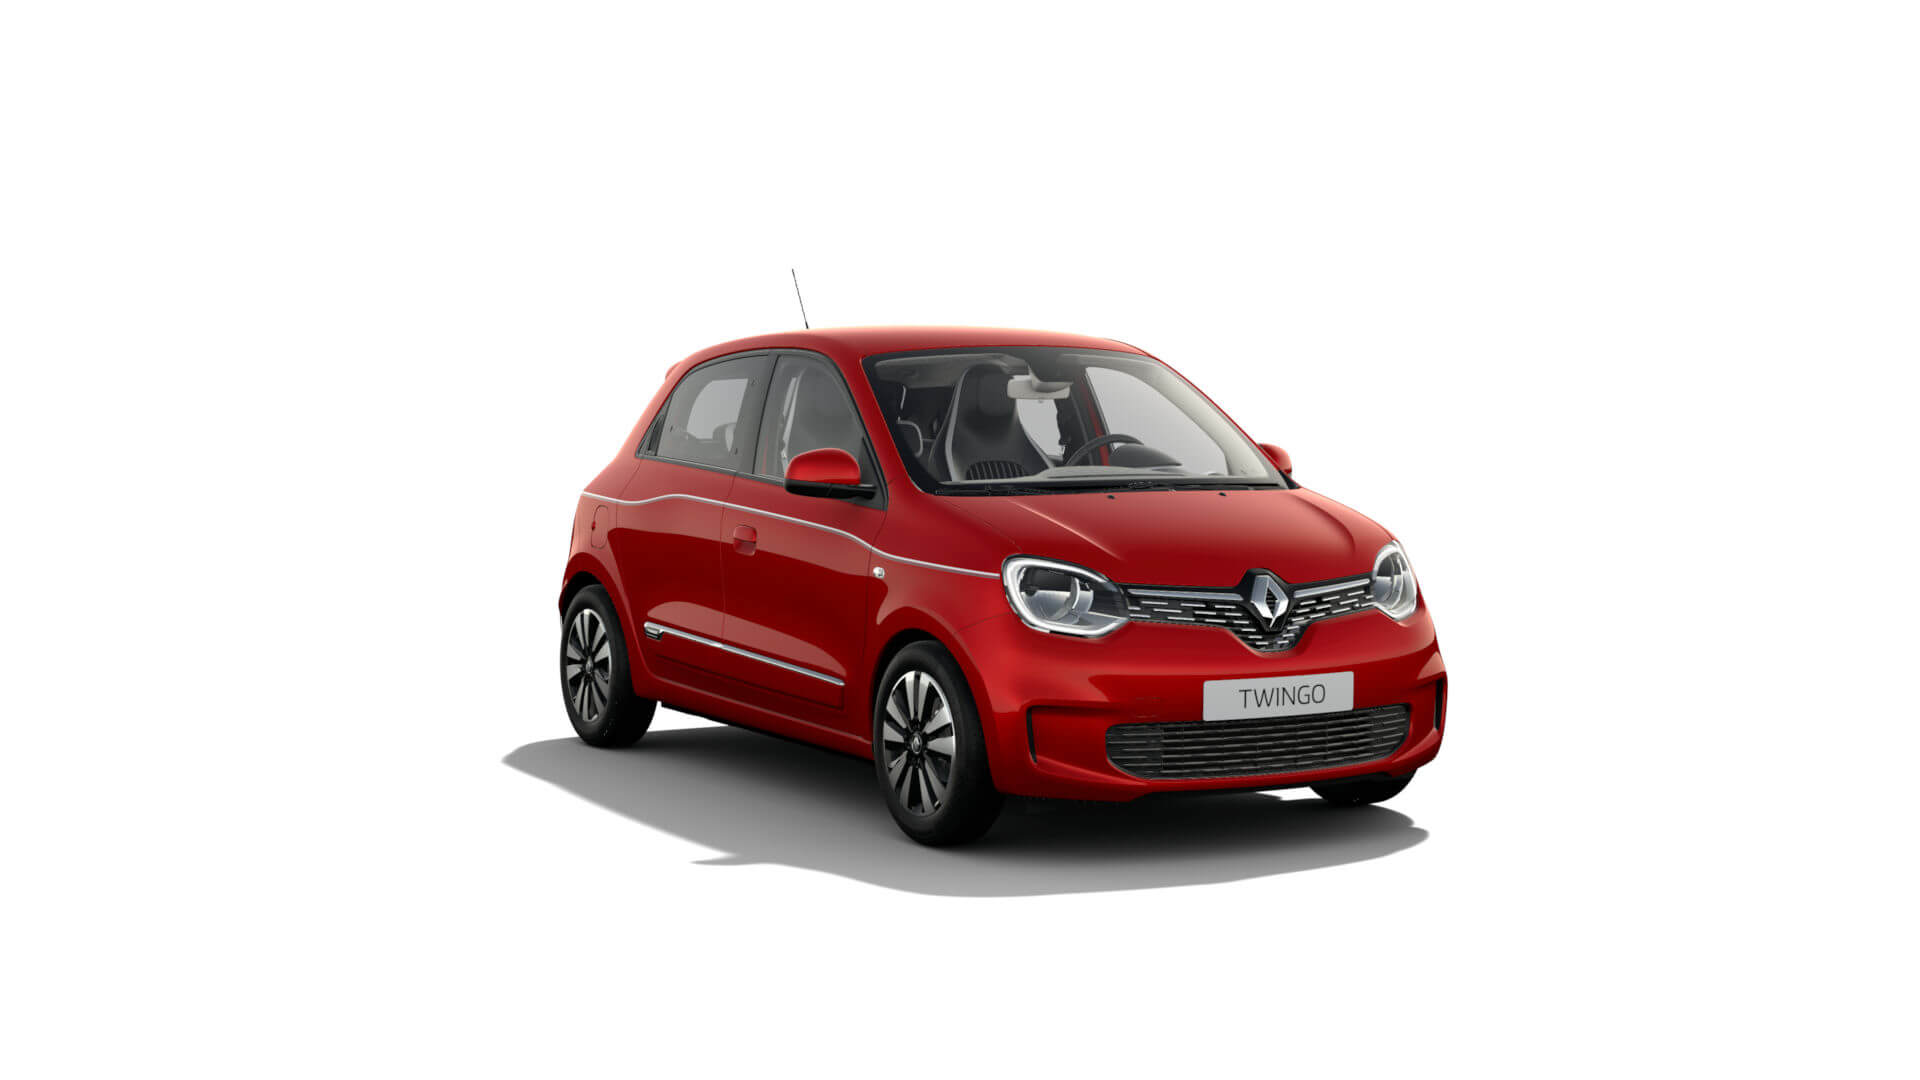 Automodell Rot - Renault Twingo - Renault Ahrens Hannover